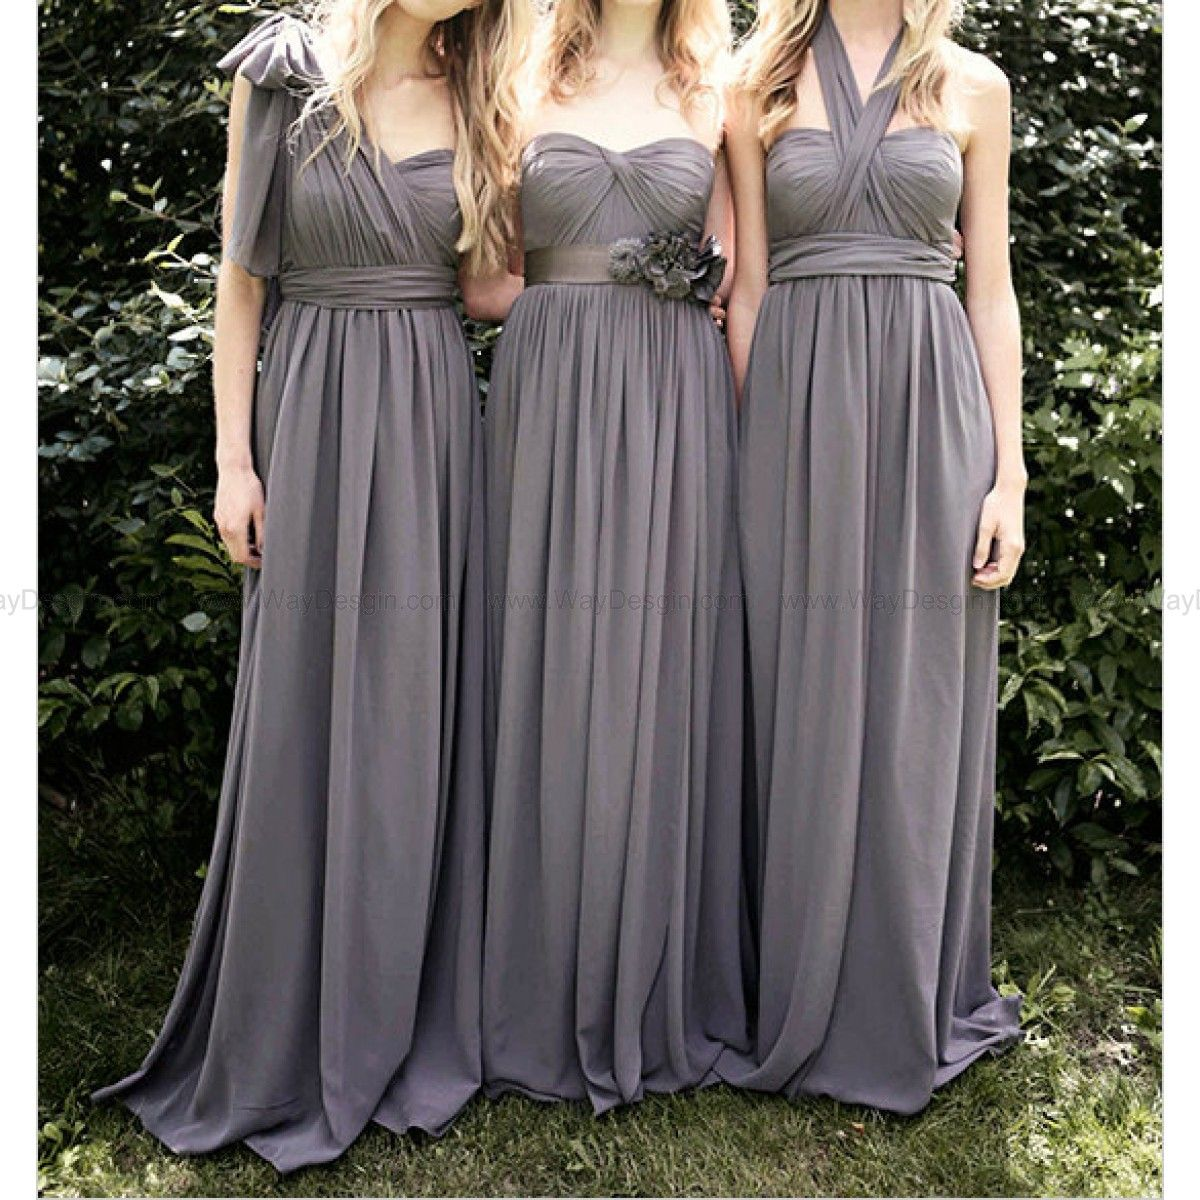 Convertible bridesmaid dresses long chiffon bridesmaid dresses cheap dress pumpkin buy quality dresses occasion directly from china dress after suppliers convertible grey bridesmaid dress muticolored chiffon beach ombrellifo Images